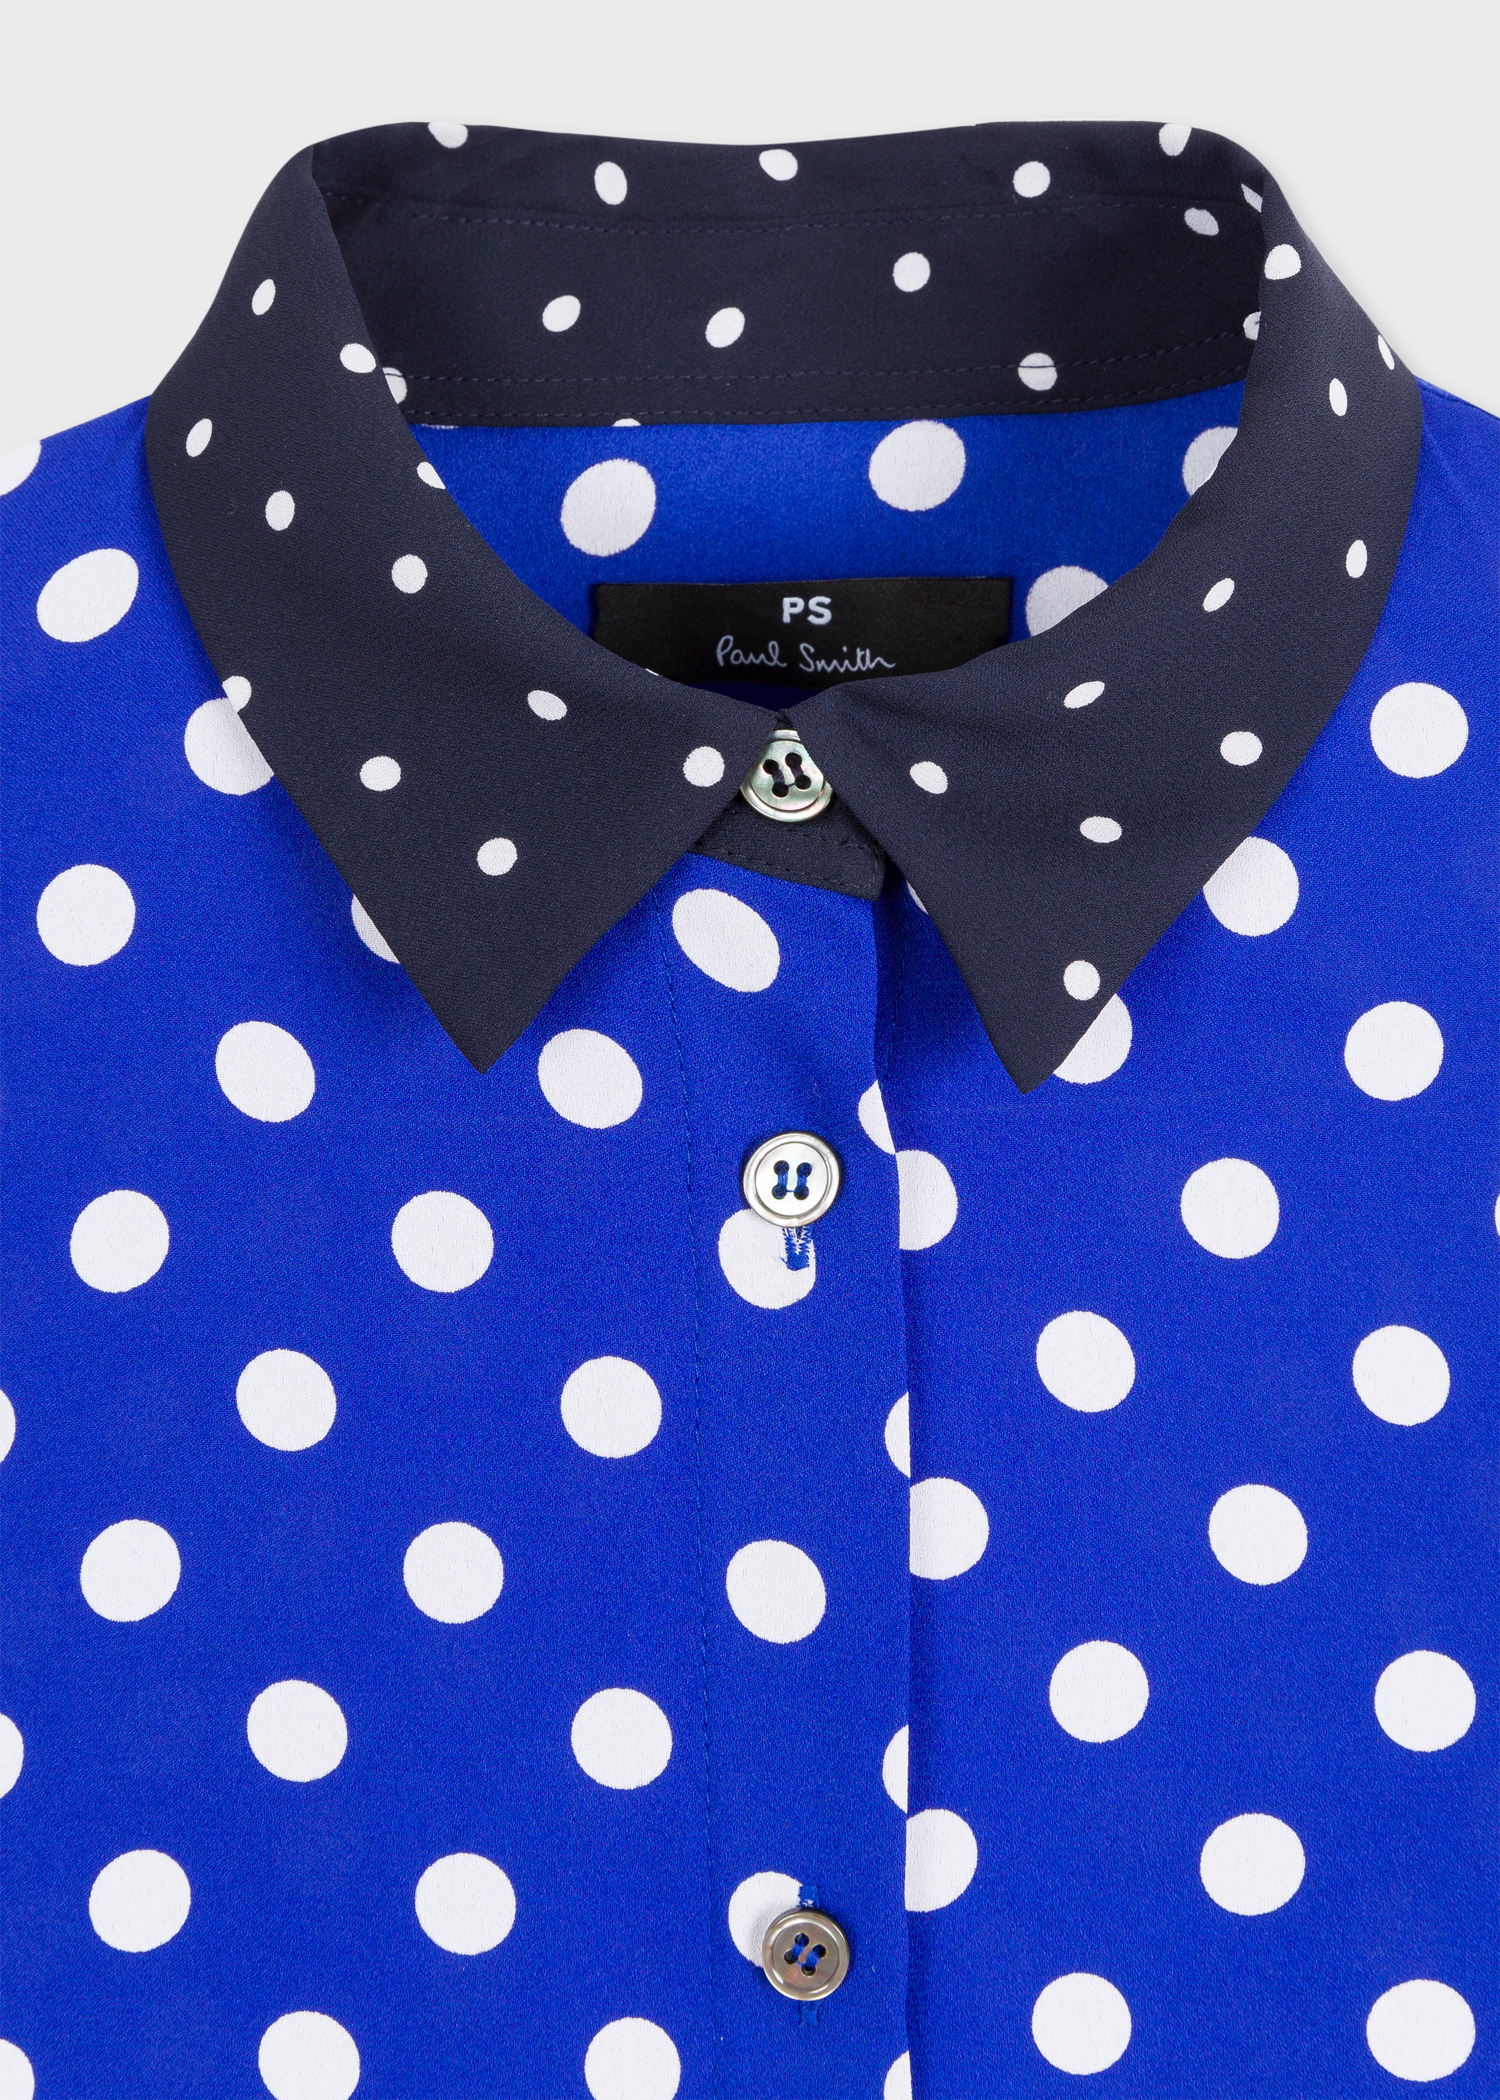 Women's Blue And White Polka Dot Shirt With Contrast ...